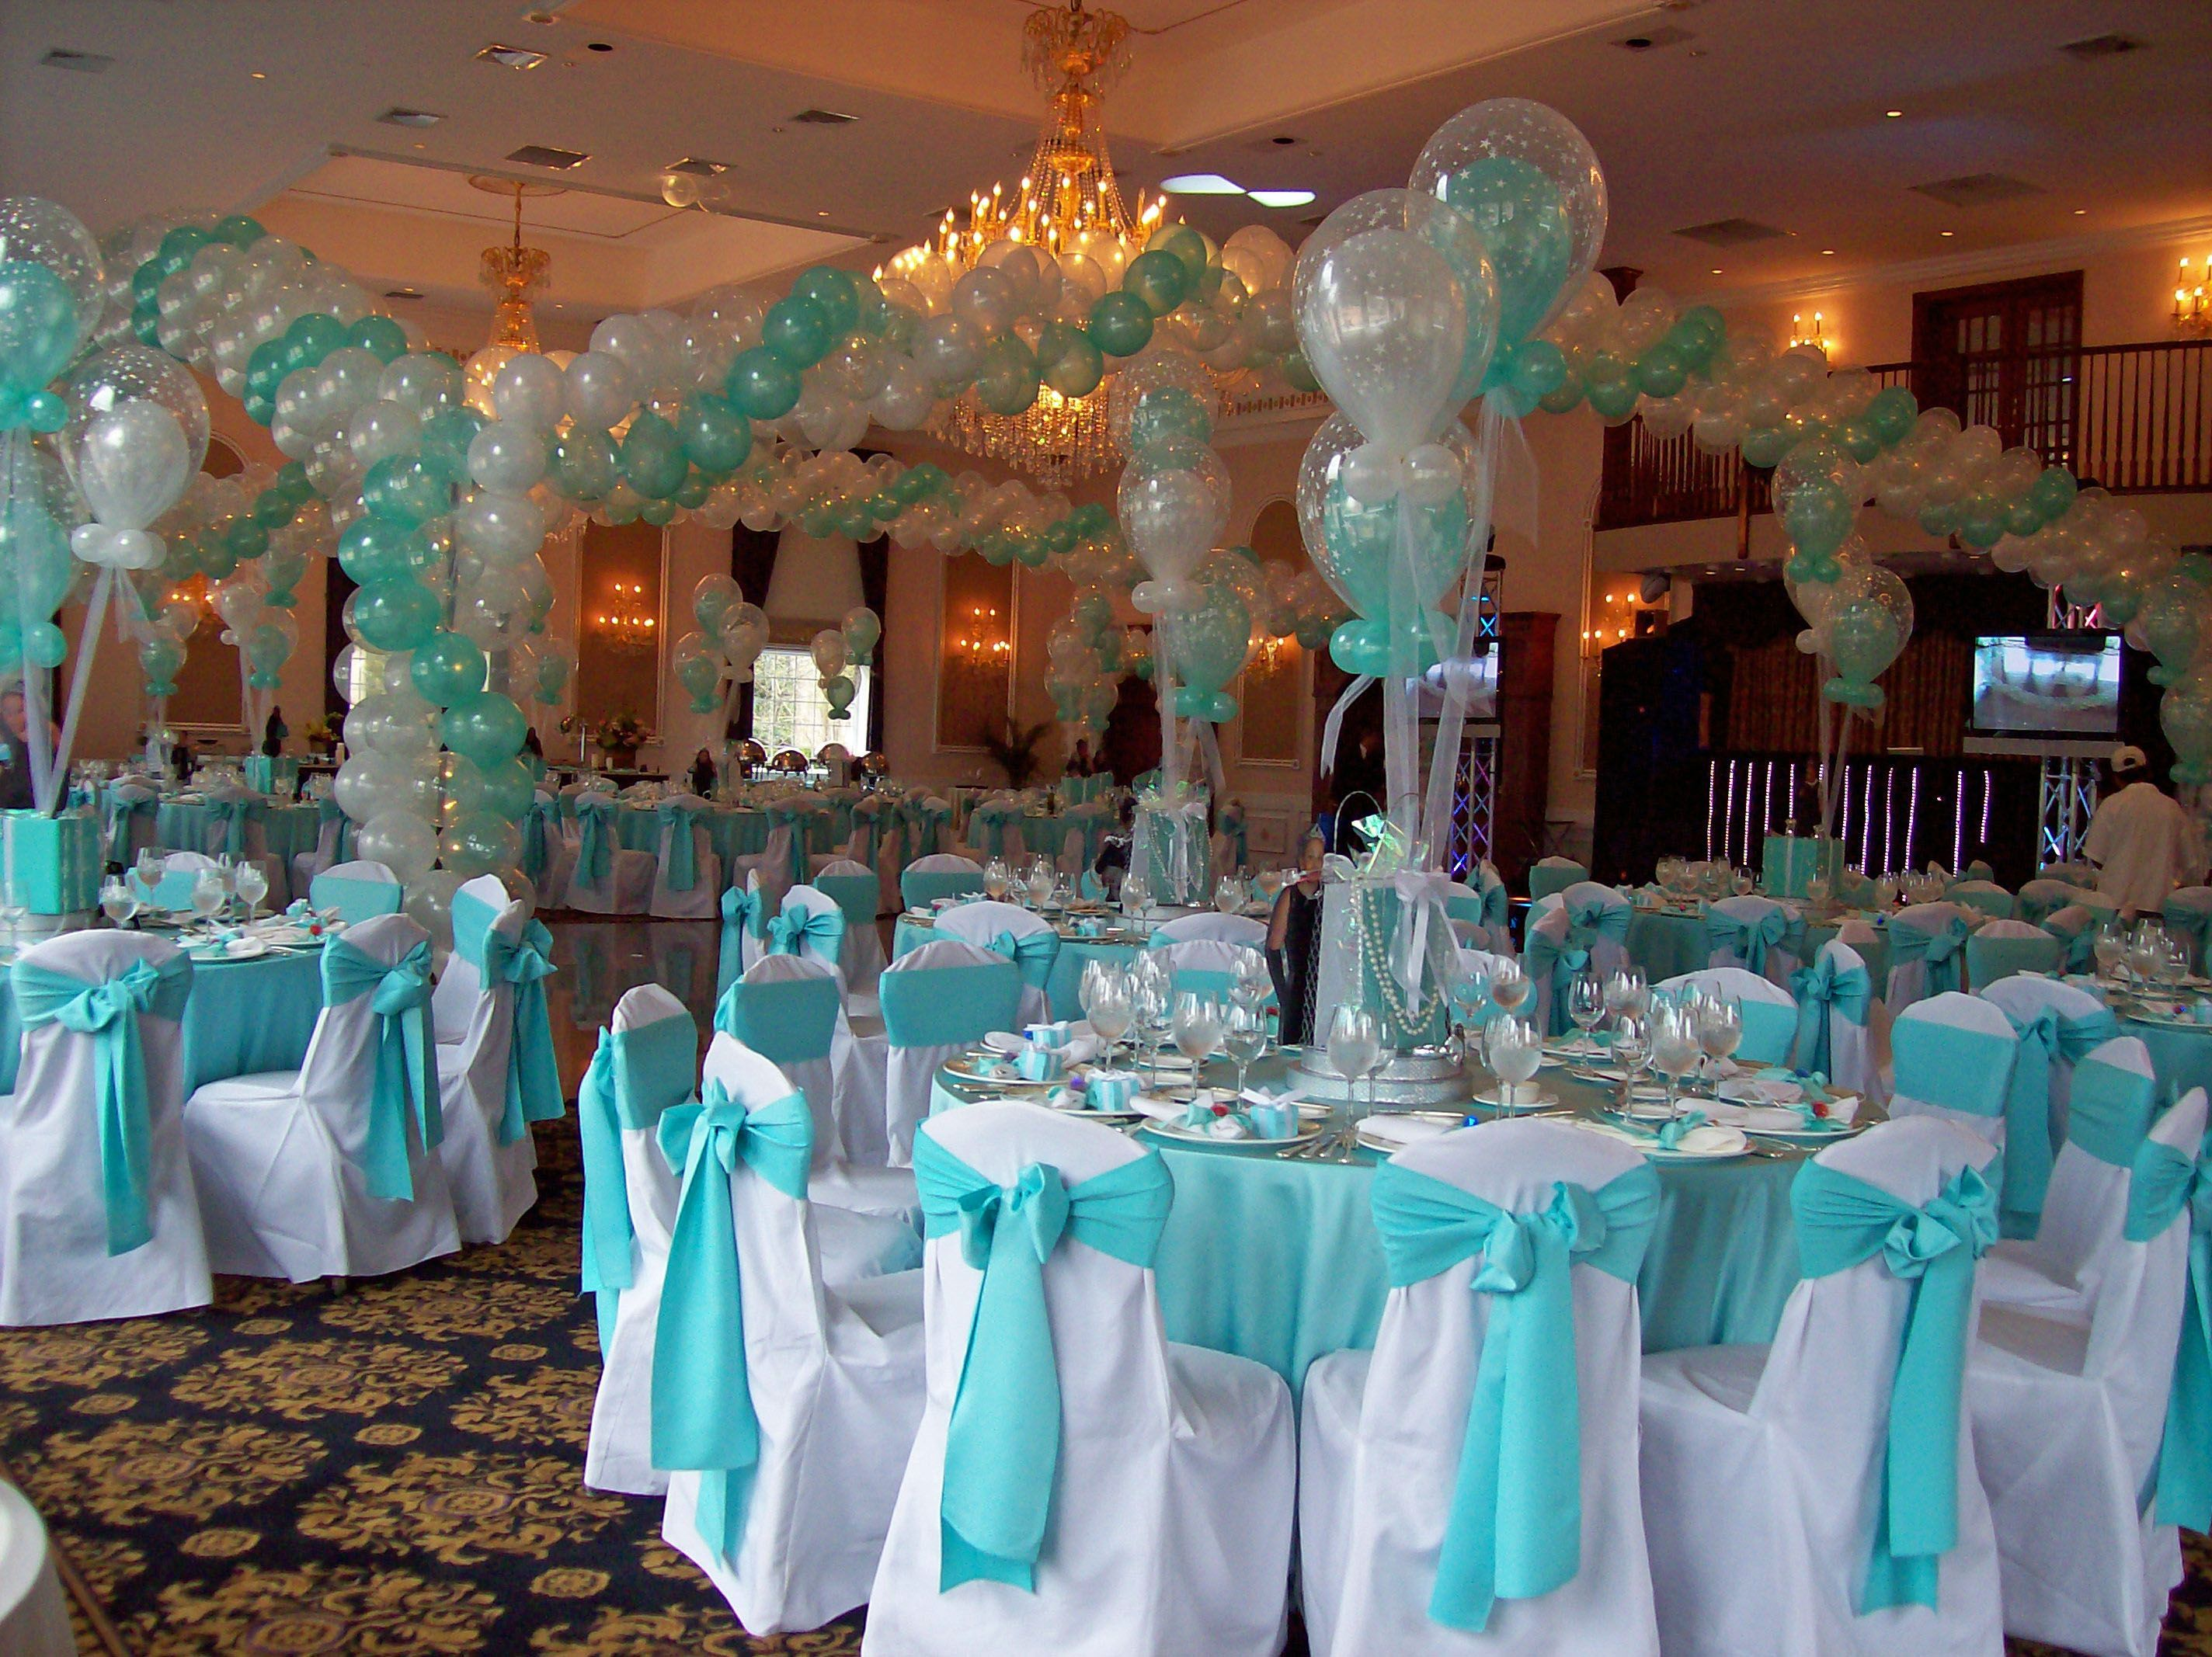 Tiffany Party Room Birthday Ideas Pinterest